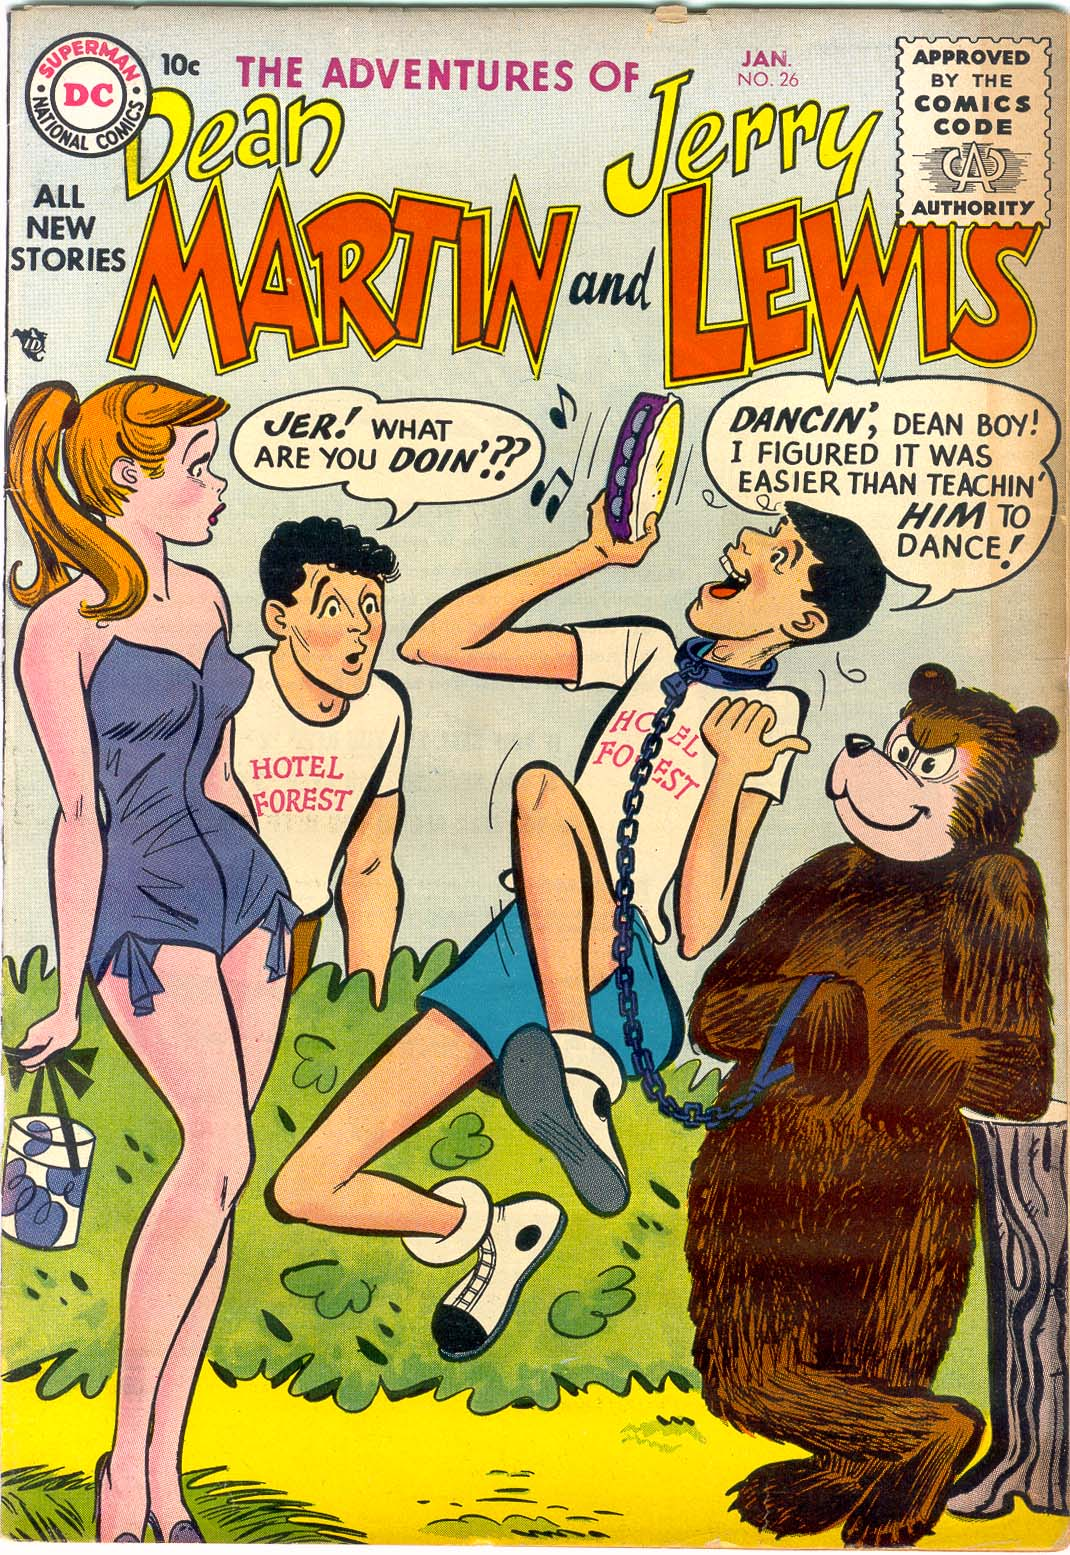 The Adventures of Dean Martin and Jerry Lewis 26 Page 1